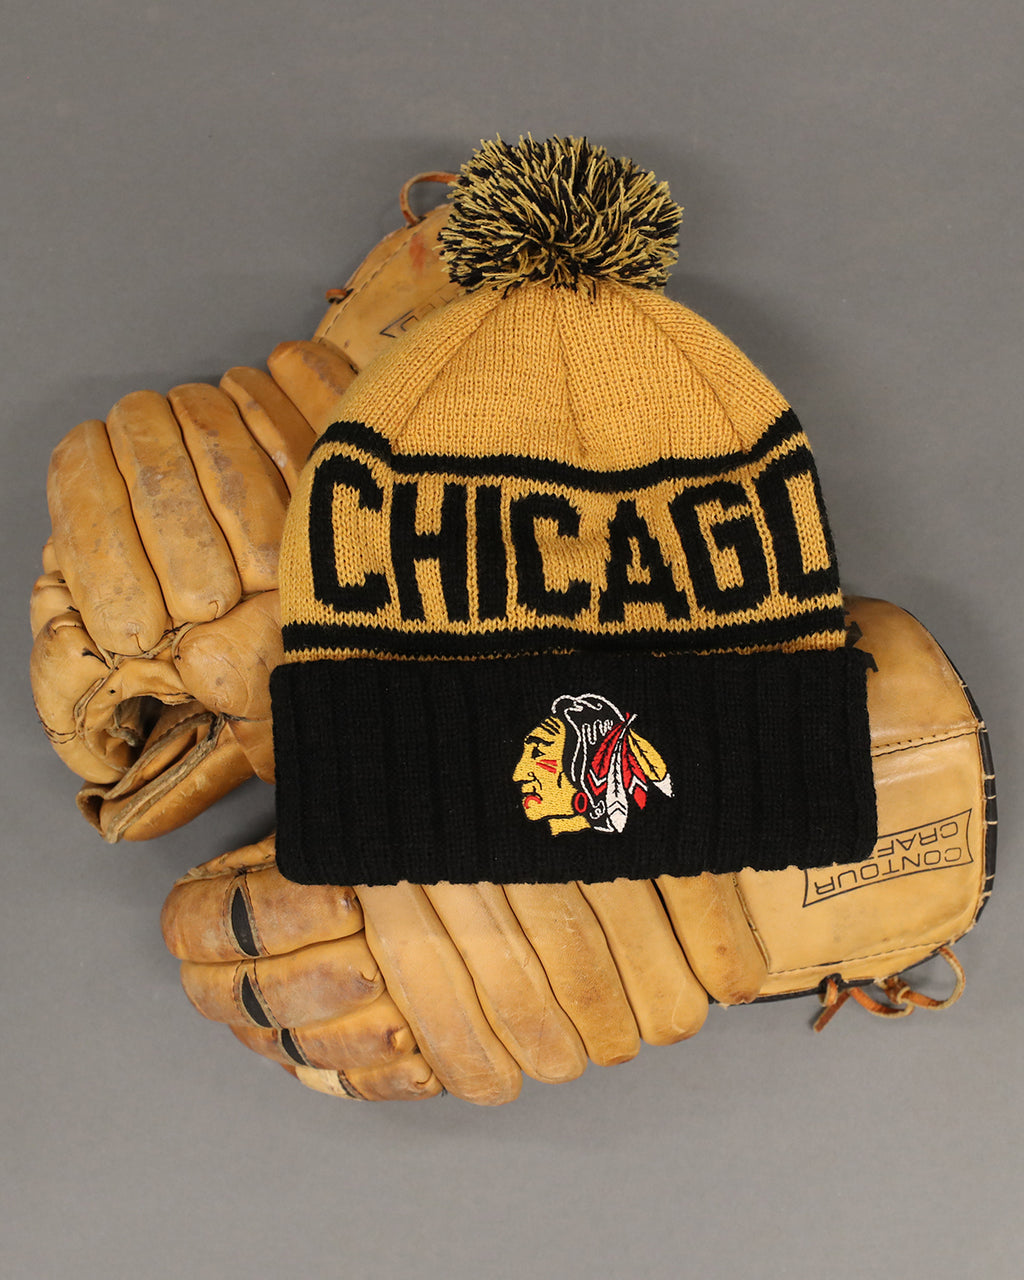 Archive Collection Gold Chicago Knit Hat